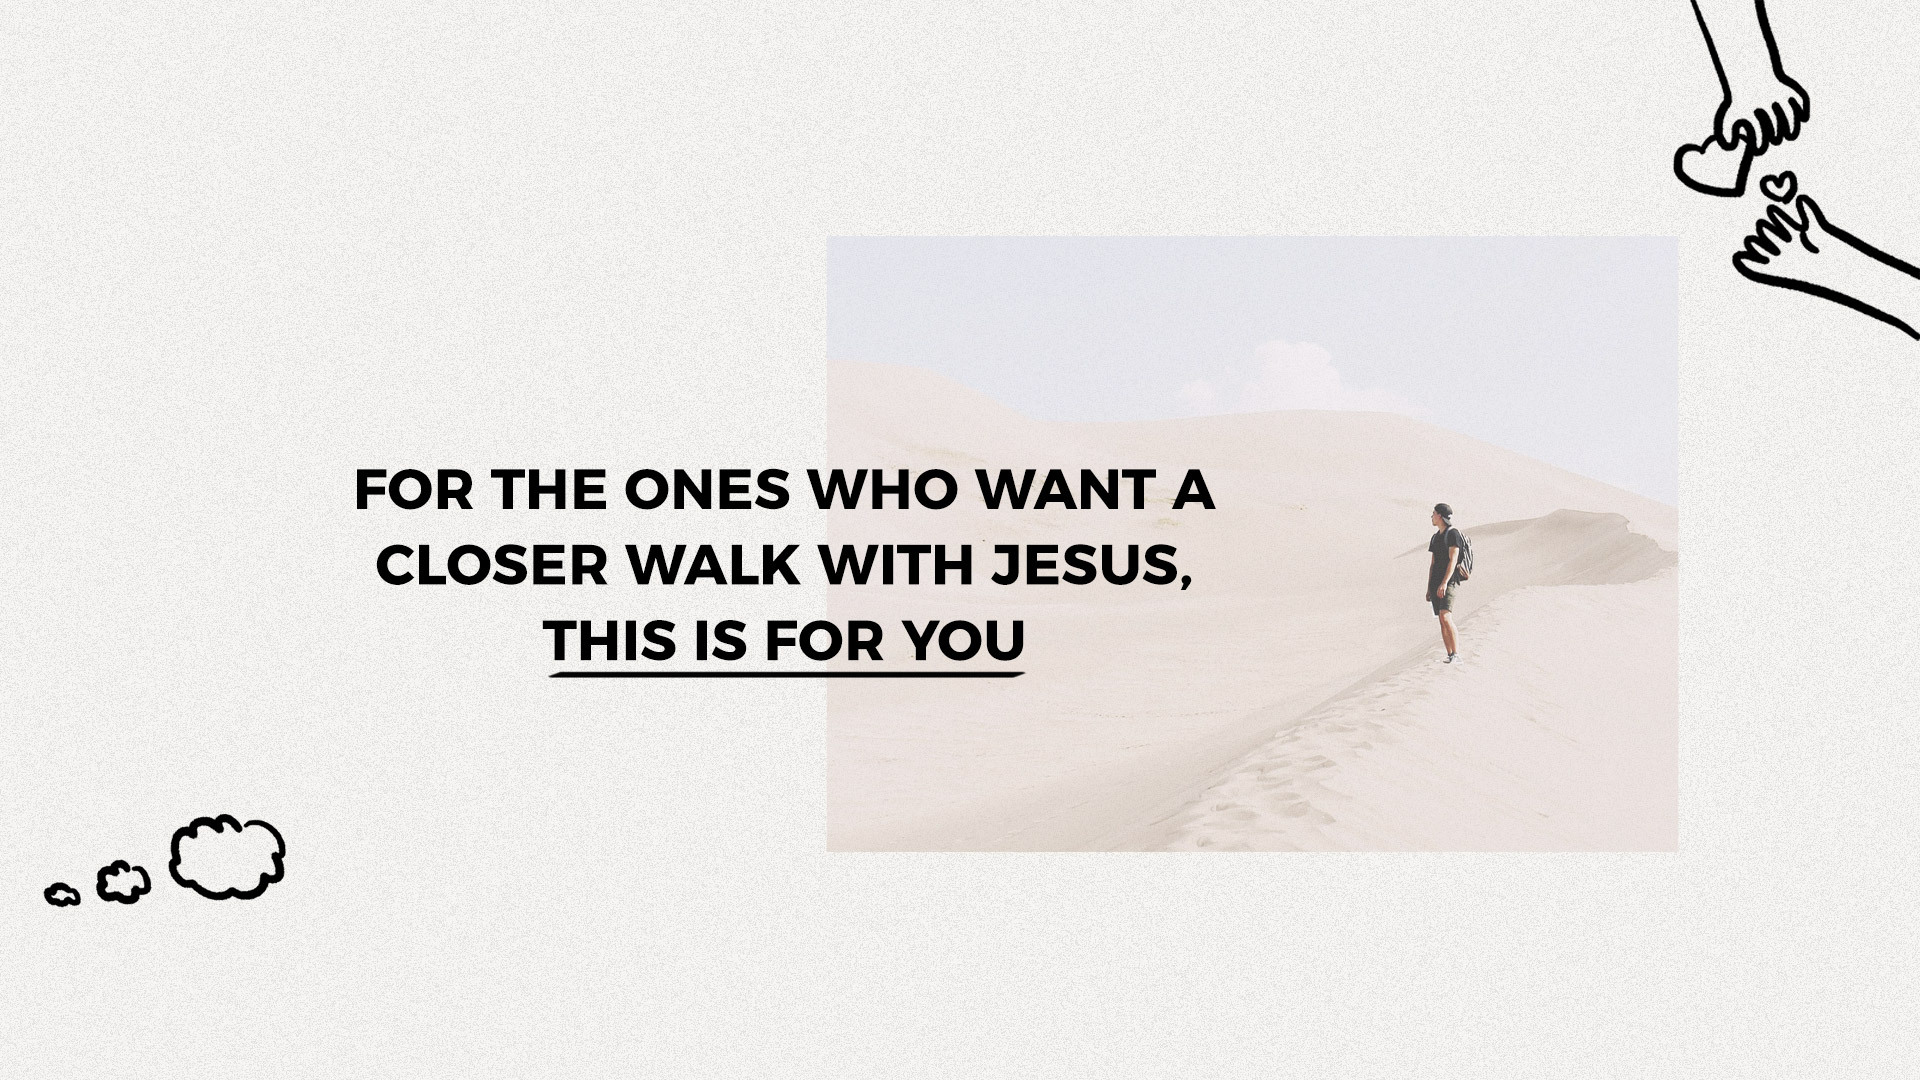 For the ones who want a closer walk with Jesus, this is for you